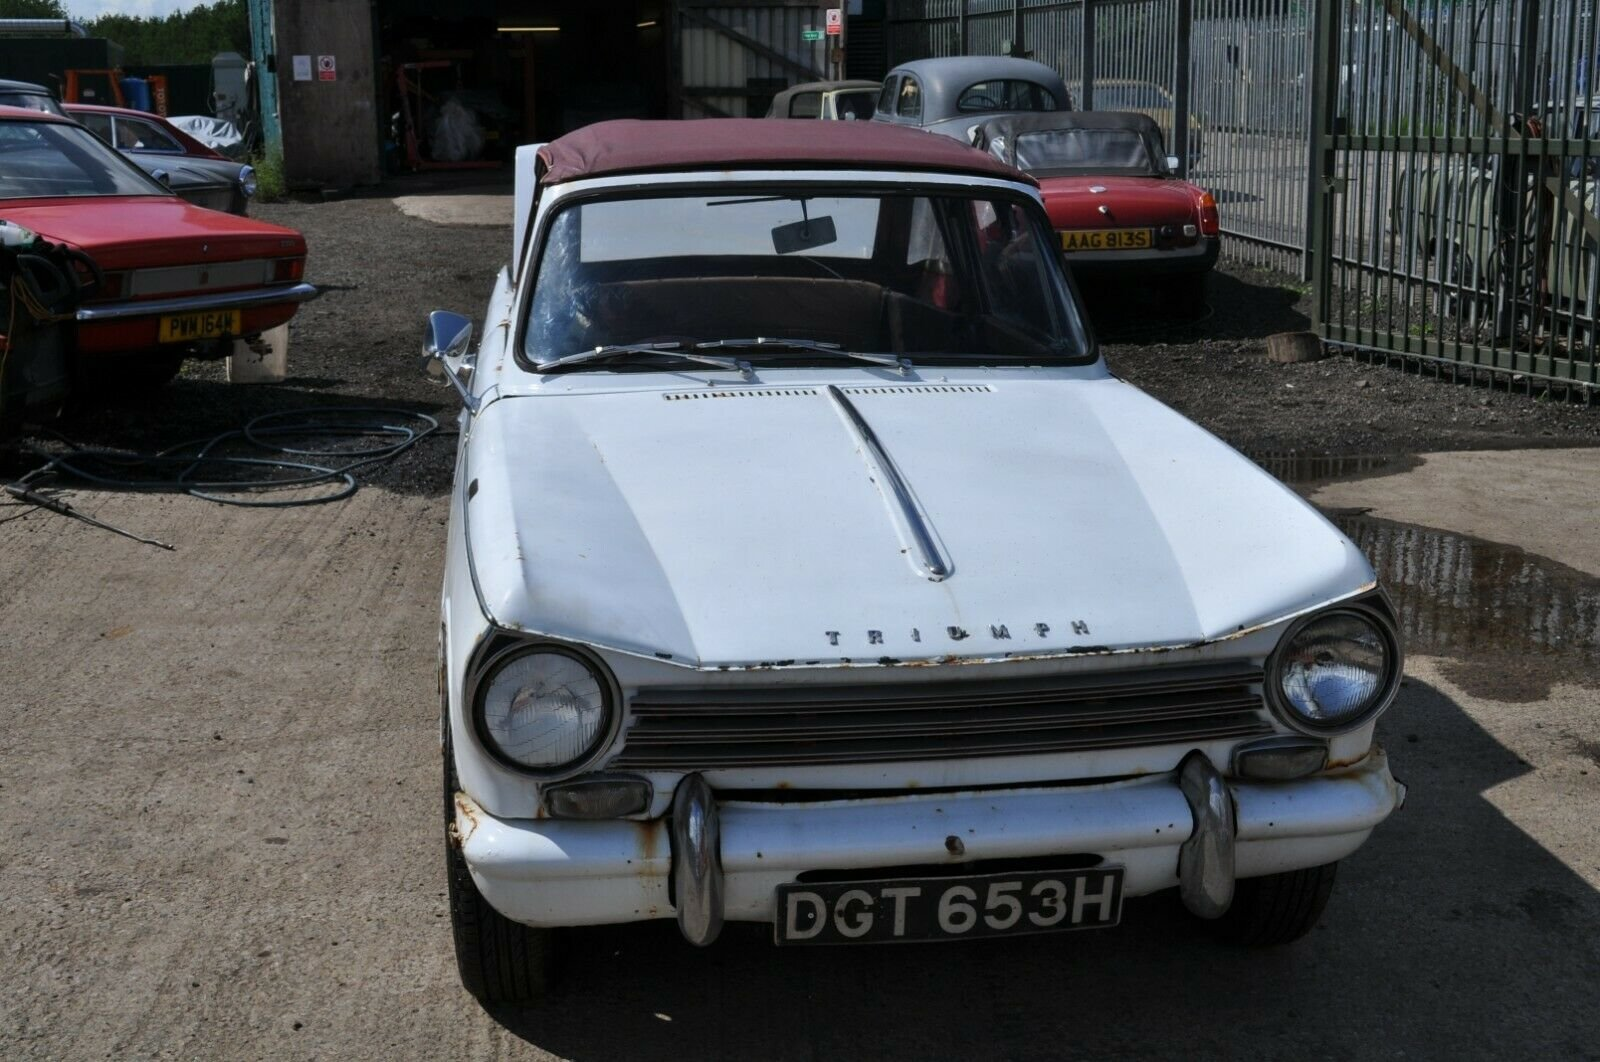 1963 1970 TRIUMPH HERALD CONVERTIBLE 13/60 CLASSIC CAR PROJECT  SOLD (picture 1 of 6)